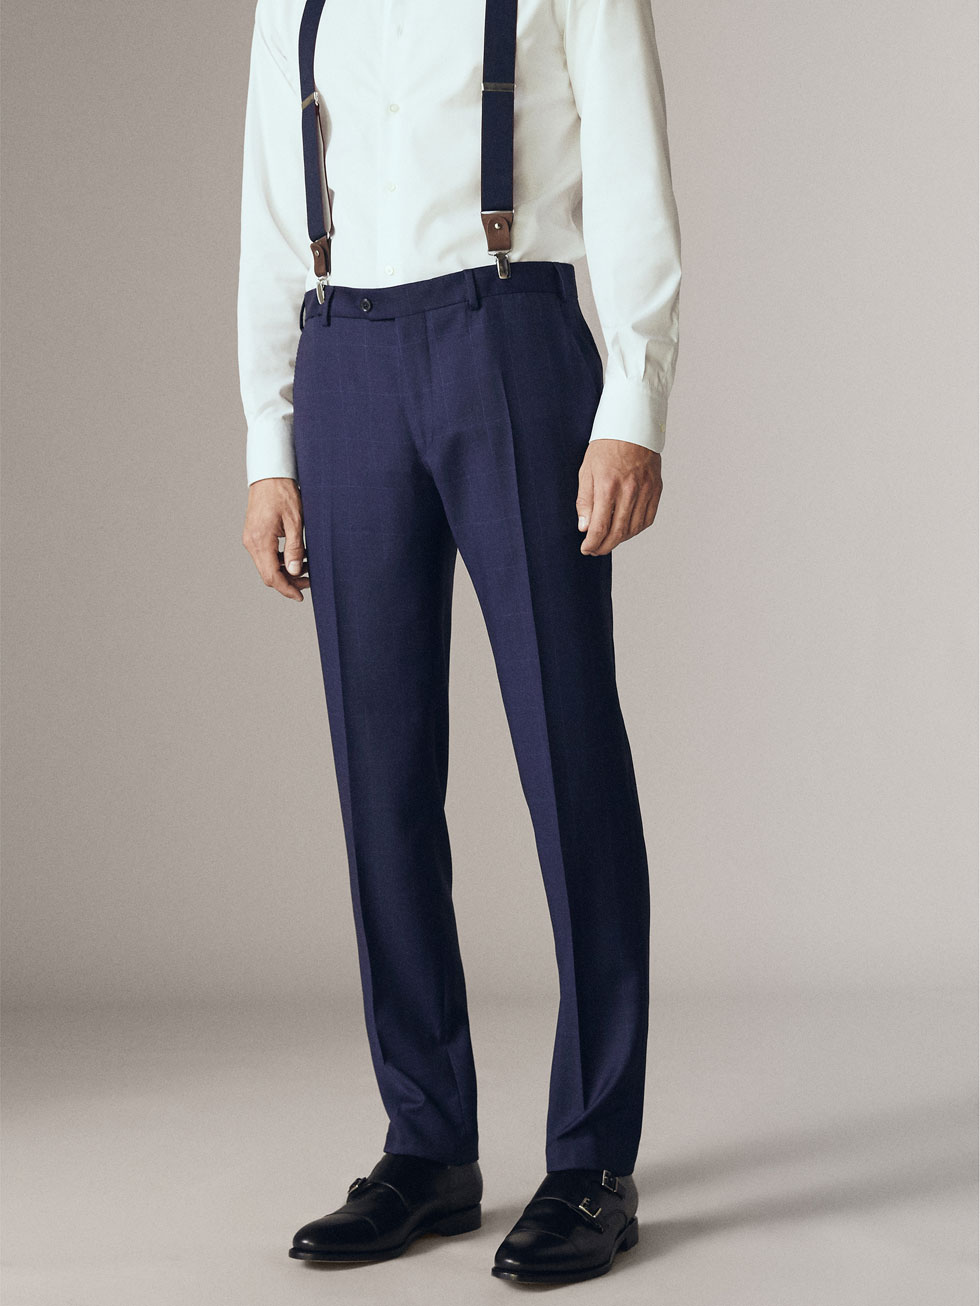 Skinny Fit Suit Trousers In Check - Light blue check Selected Clearance Low Shipping ofSs2BPCI